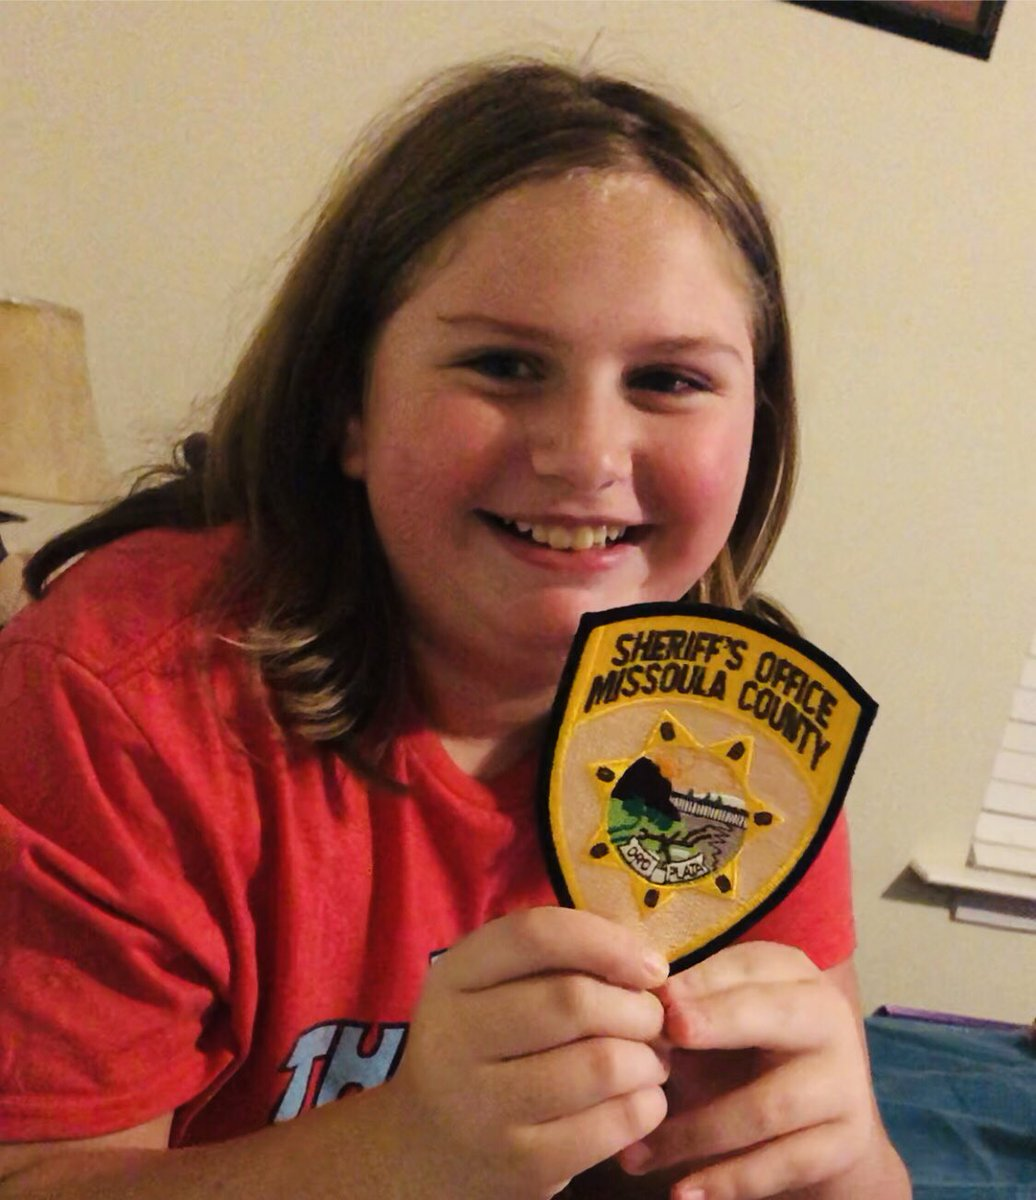 @Bill_Burt_409 Huge Thank you for the patch! She loves this!!! Future K9 Officer